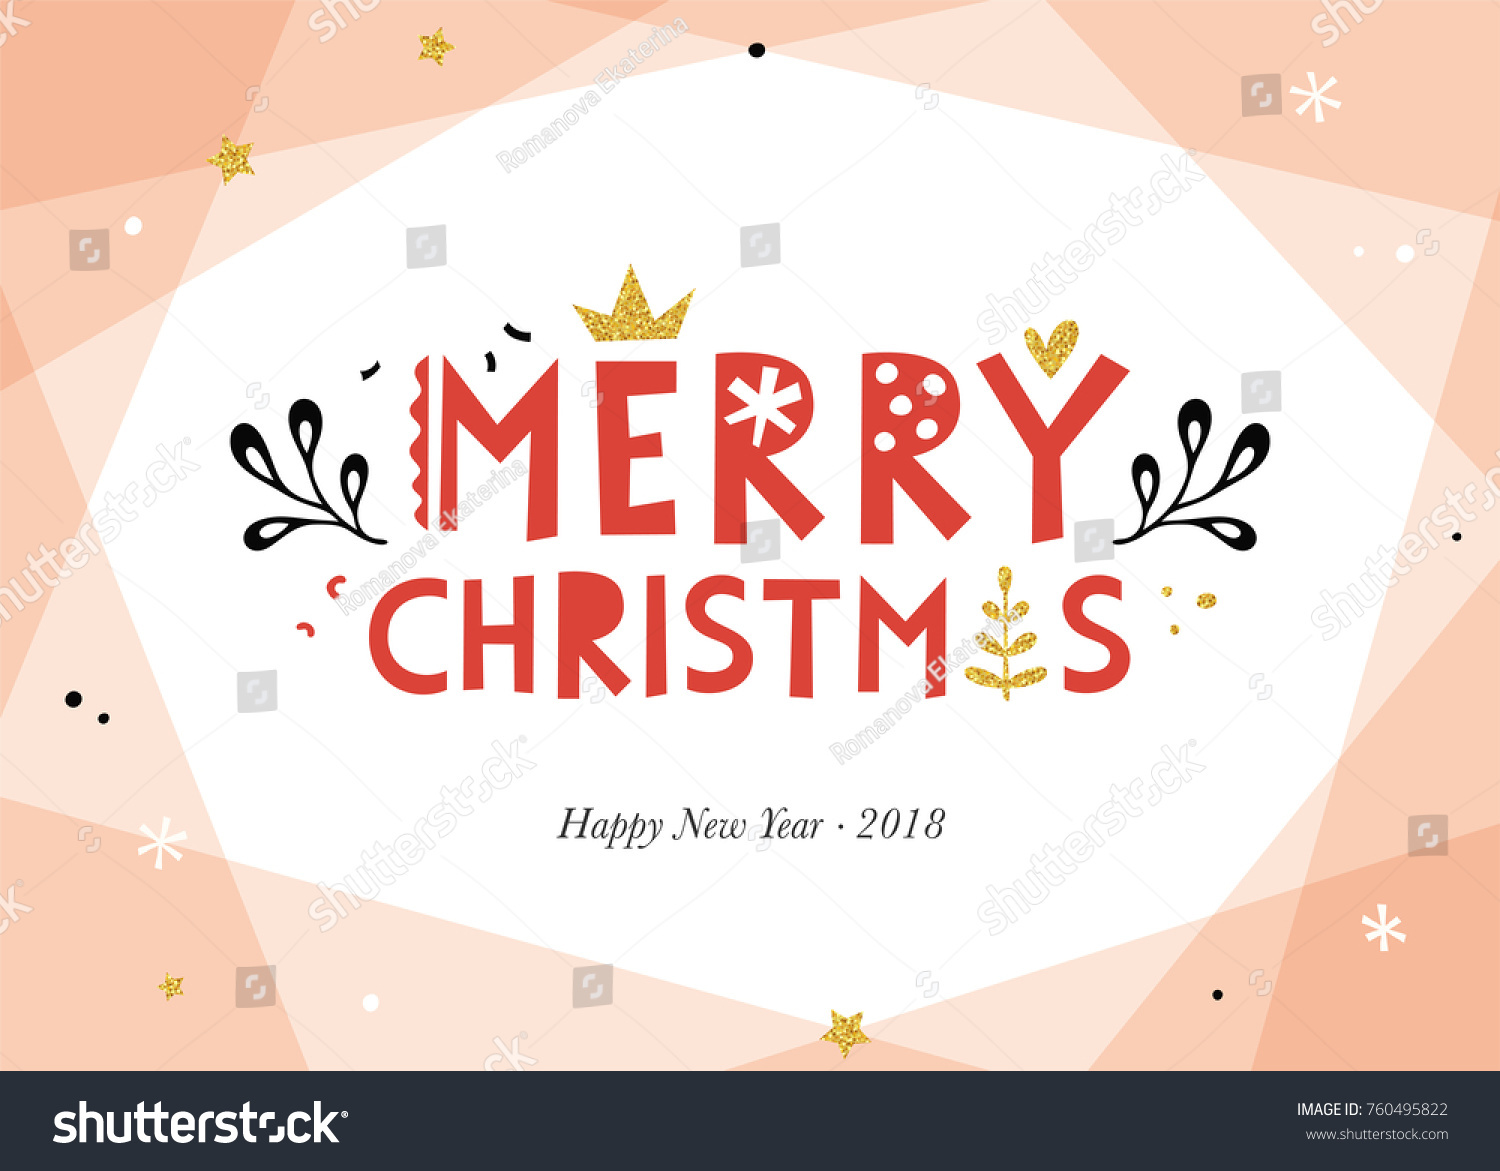 Merry Christmas Happy New Year Background Stock Vector 760495822